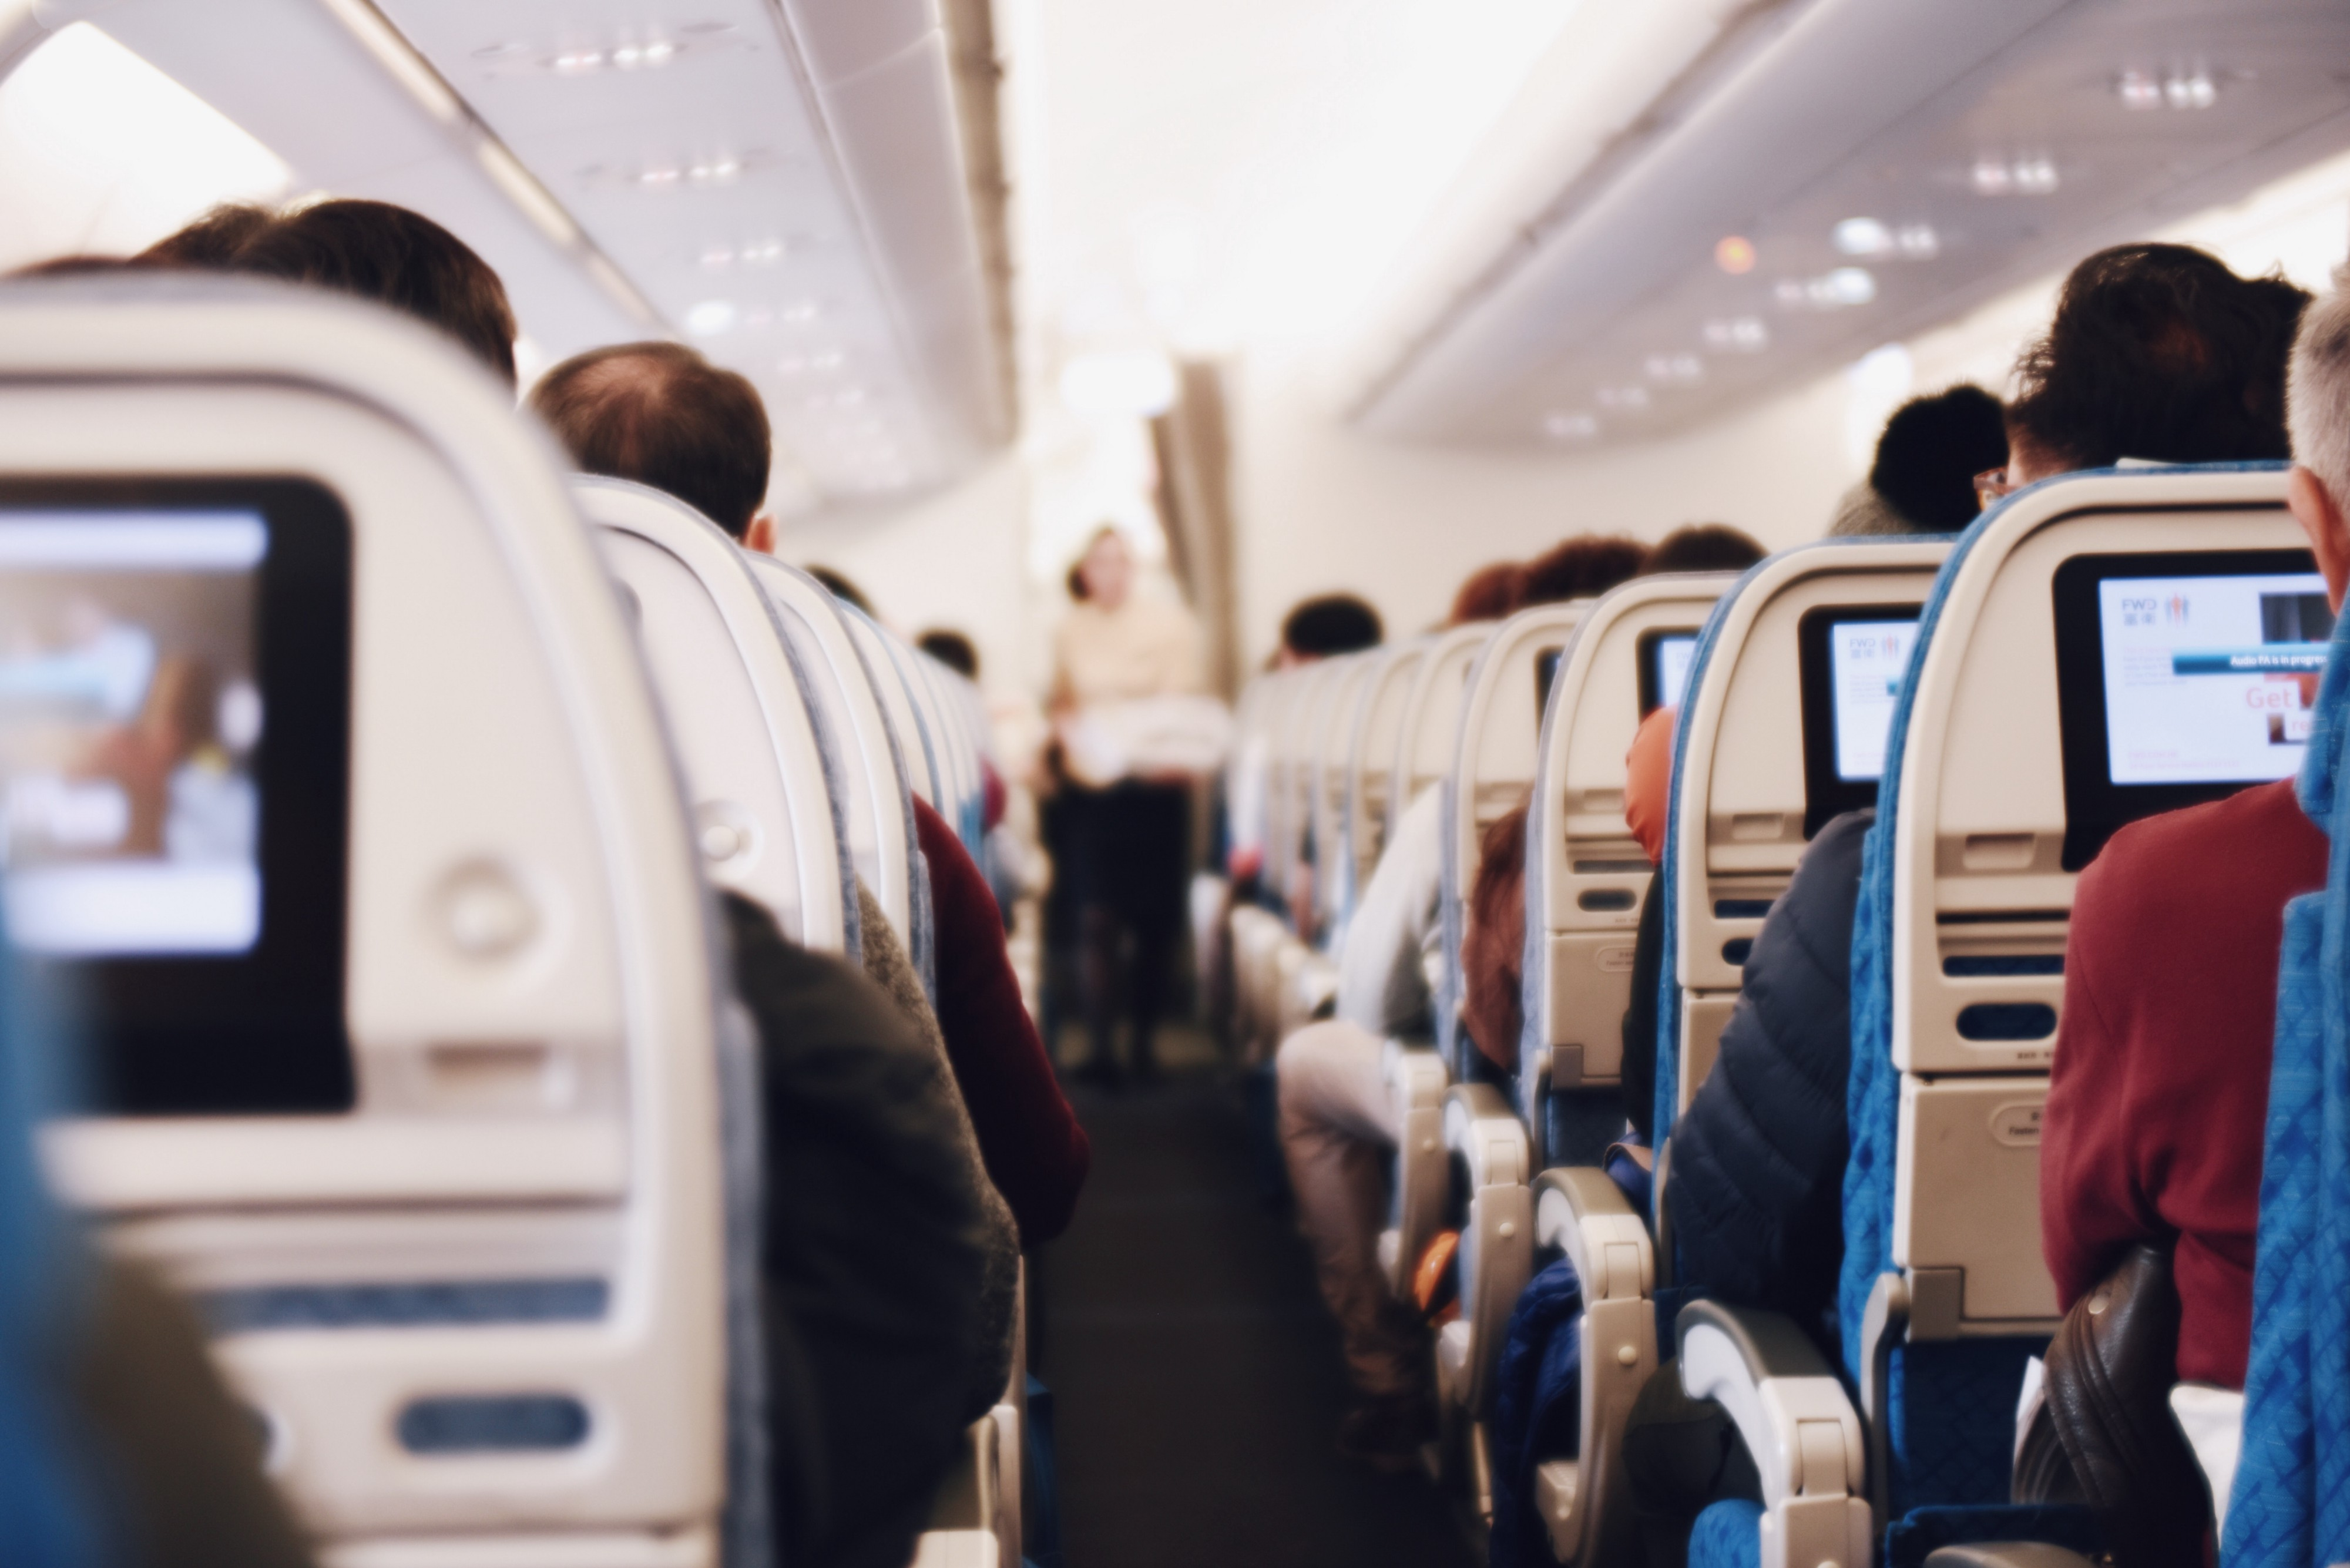 Photo of inside an airplane, looking down the aisle at the backs of passengers in seats. by Suhyeon Choi.